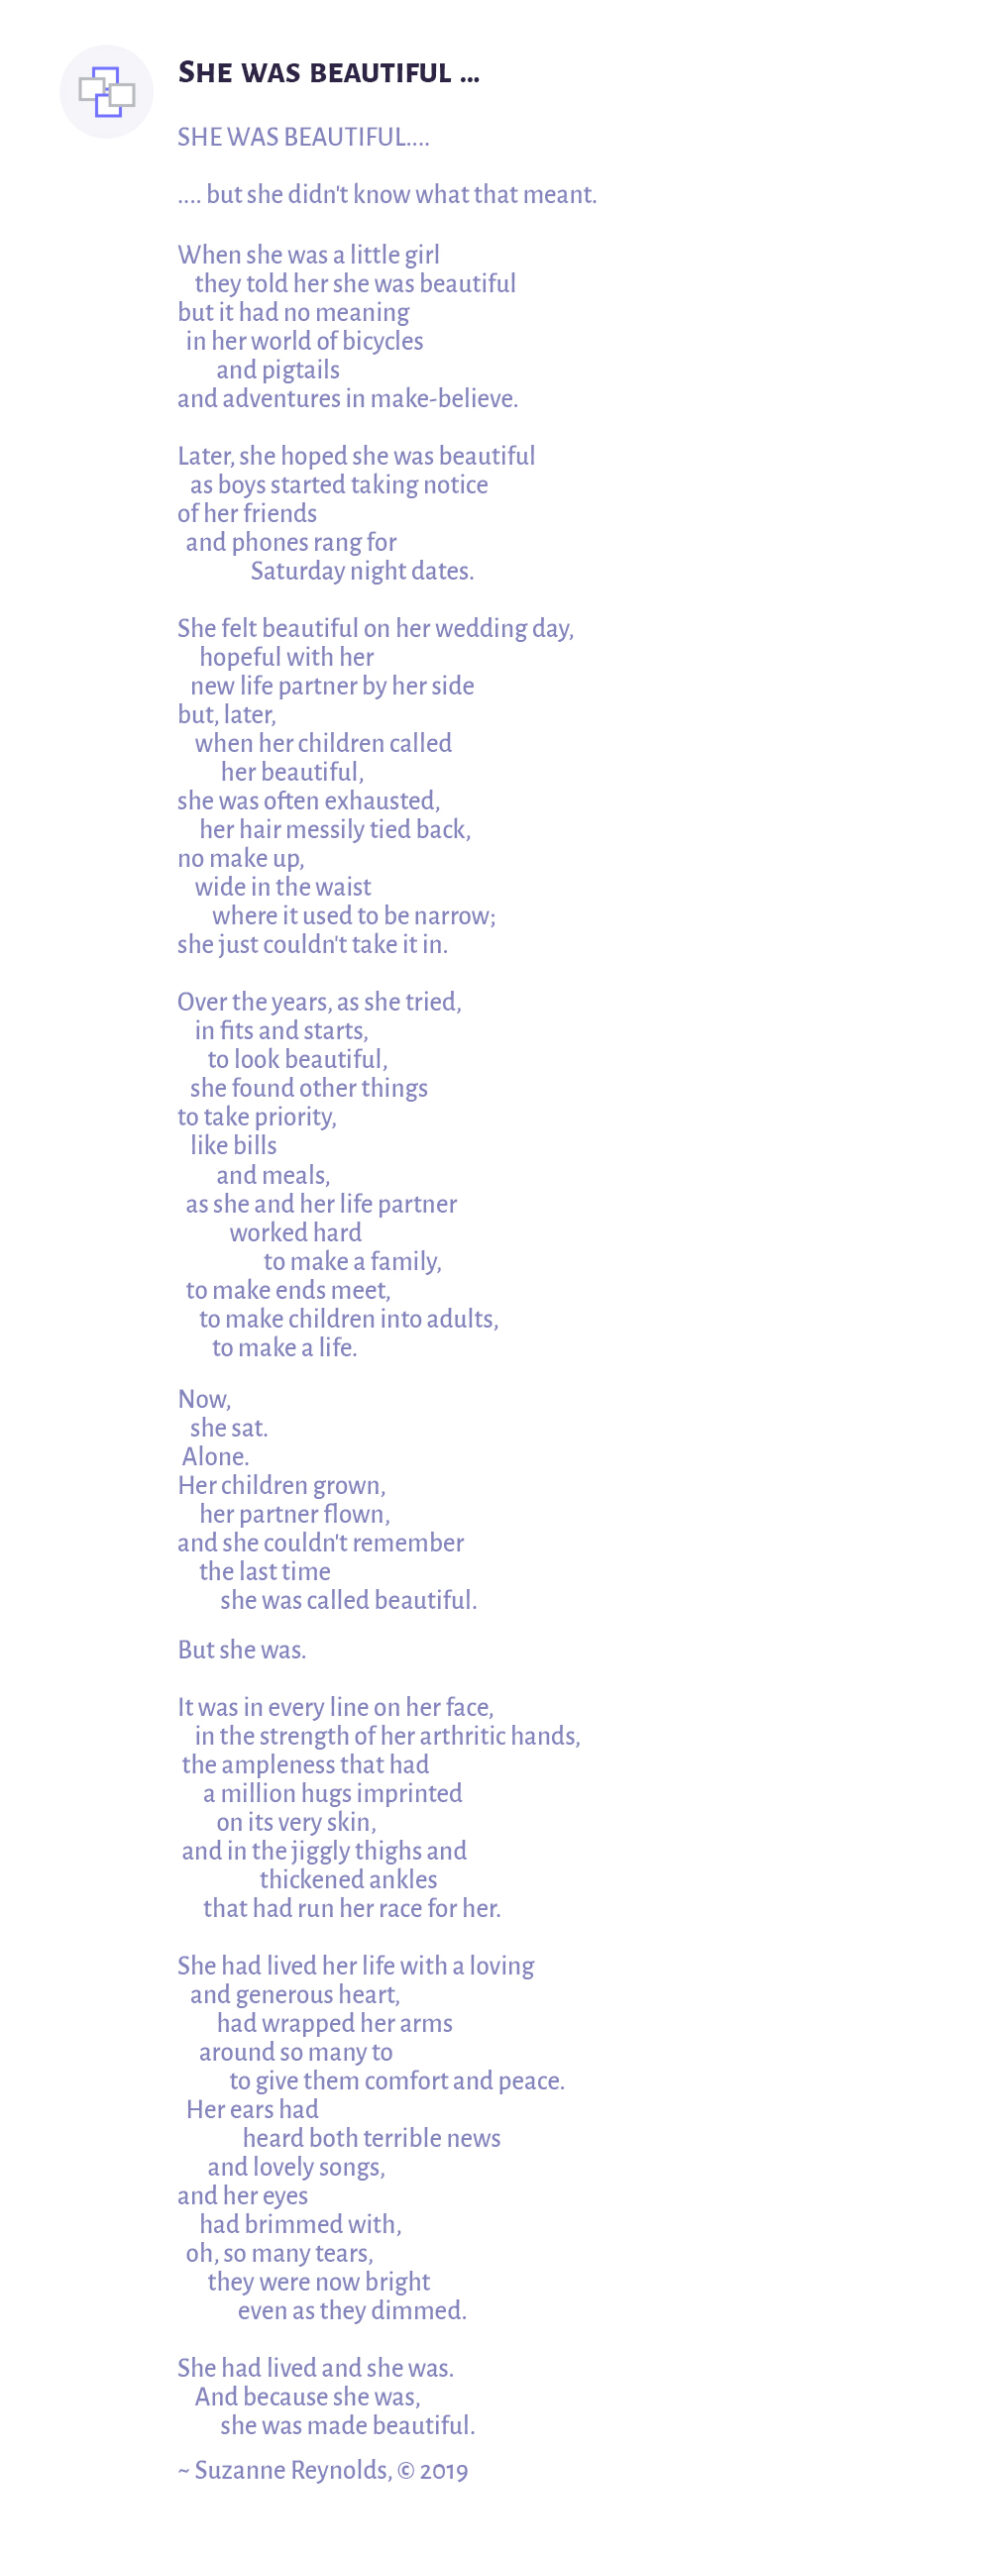 She was beautiful a poem by Suzanne Reynolds